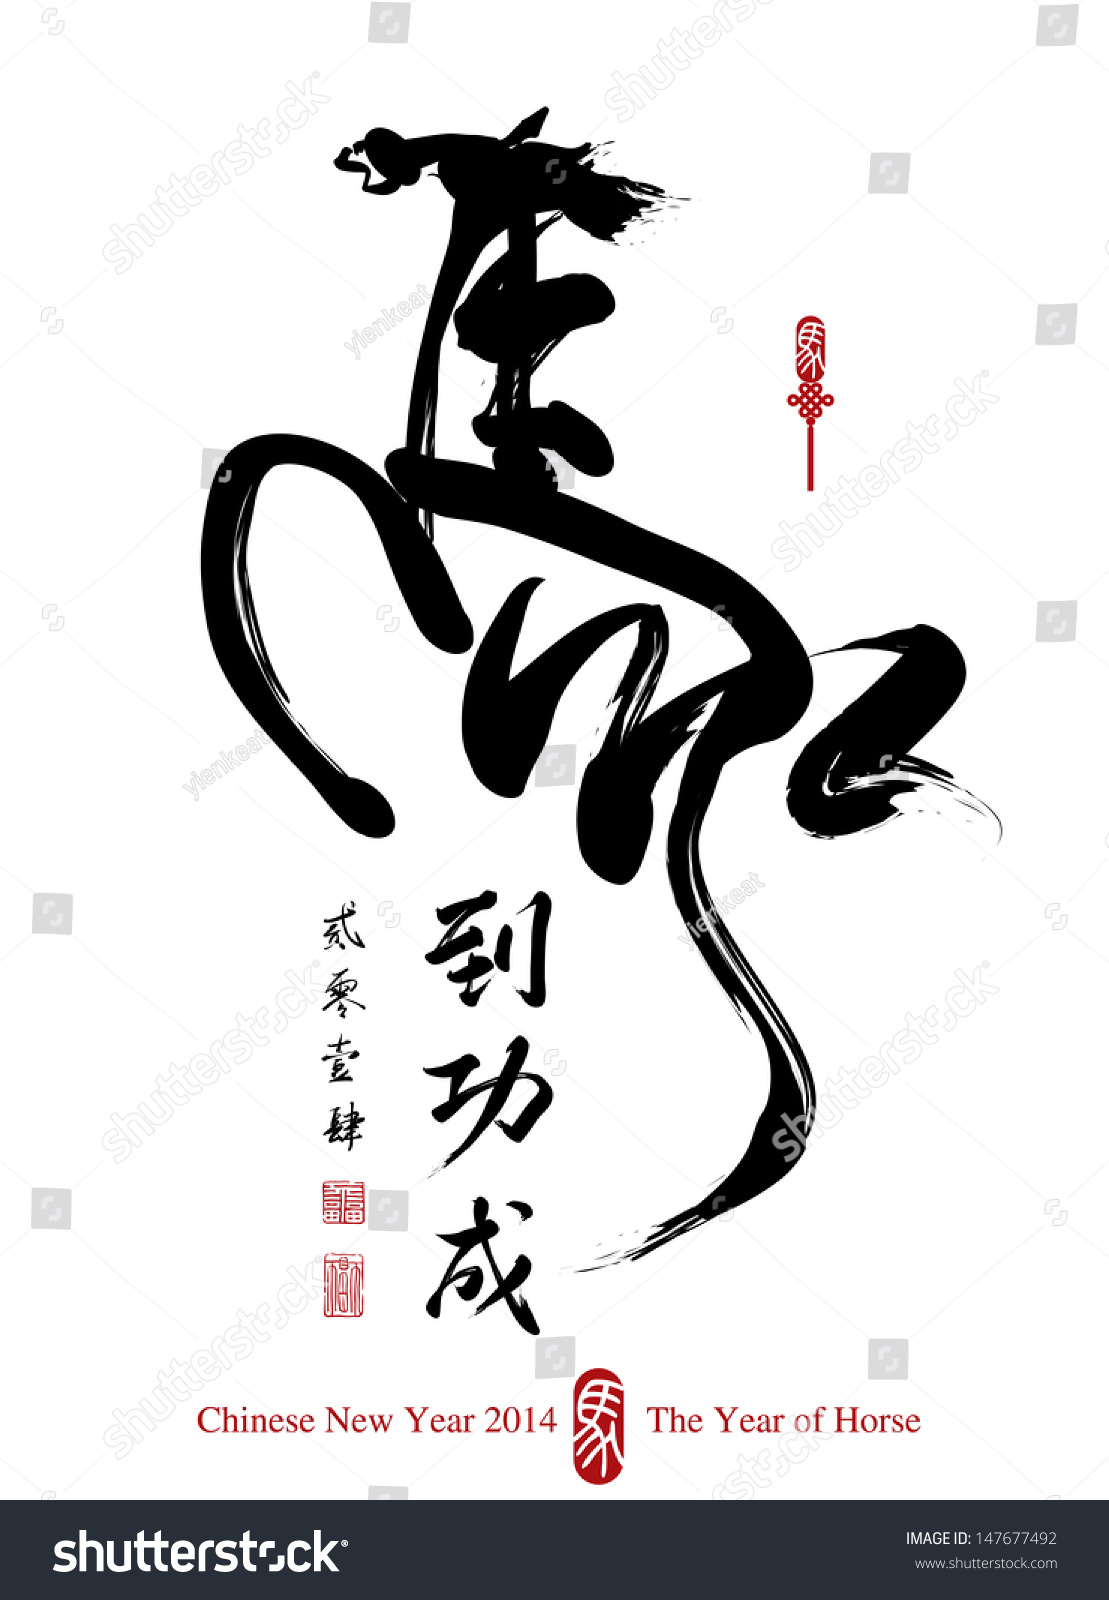 Horse calligraphy chinese new year stock vector